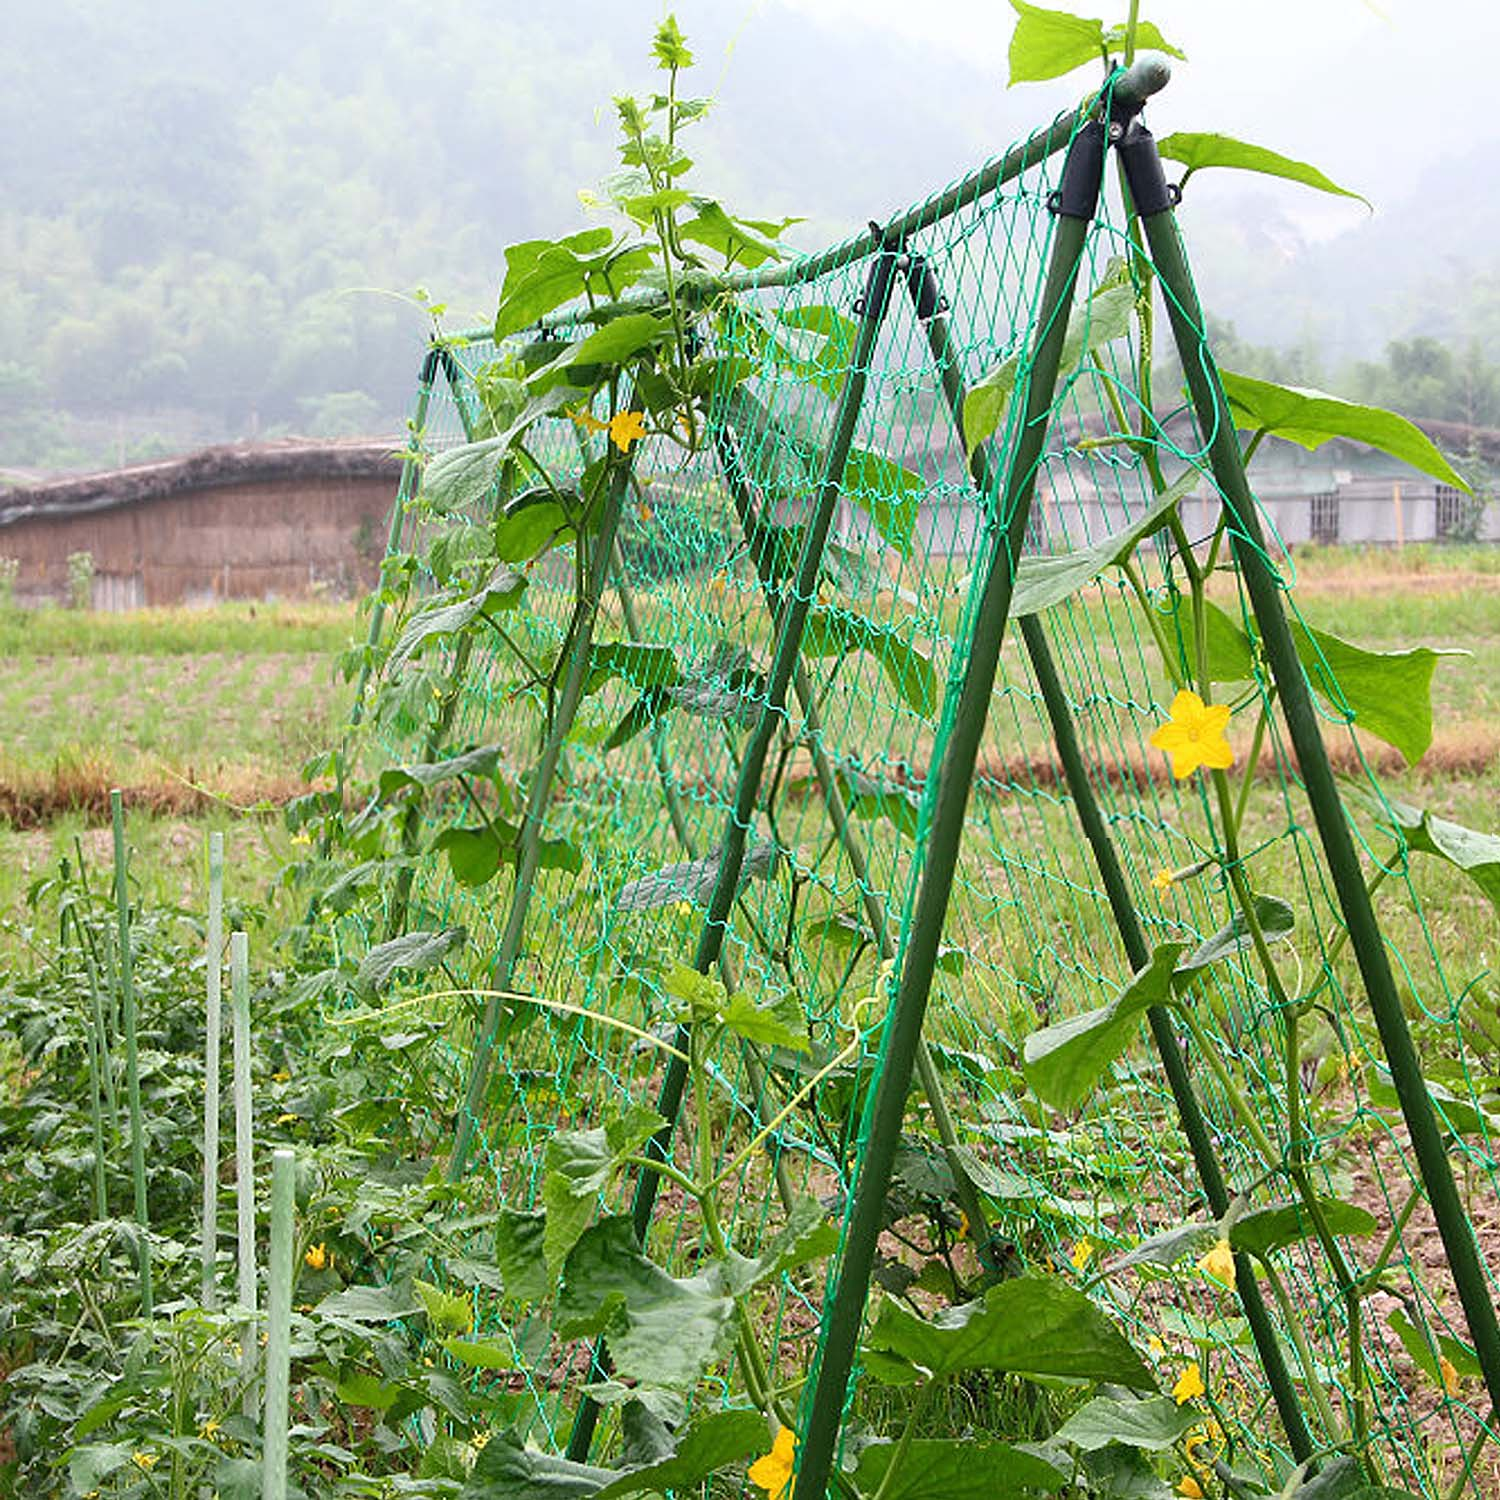 Garden Green Nylon Vegetables Fruits Nylon Trellis Netting Support Net For Climbing Vine Plants Grow Fence Anti-bird Net